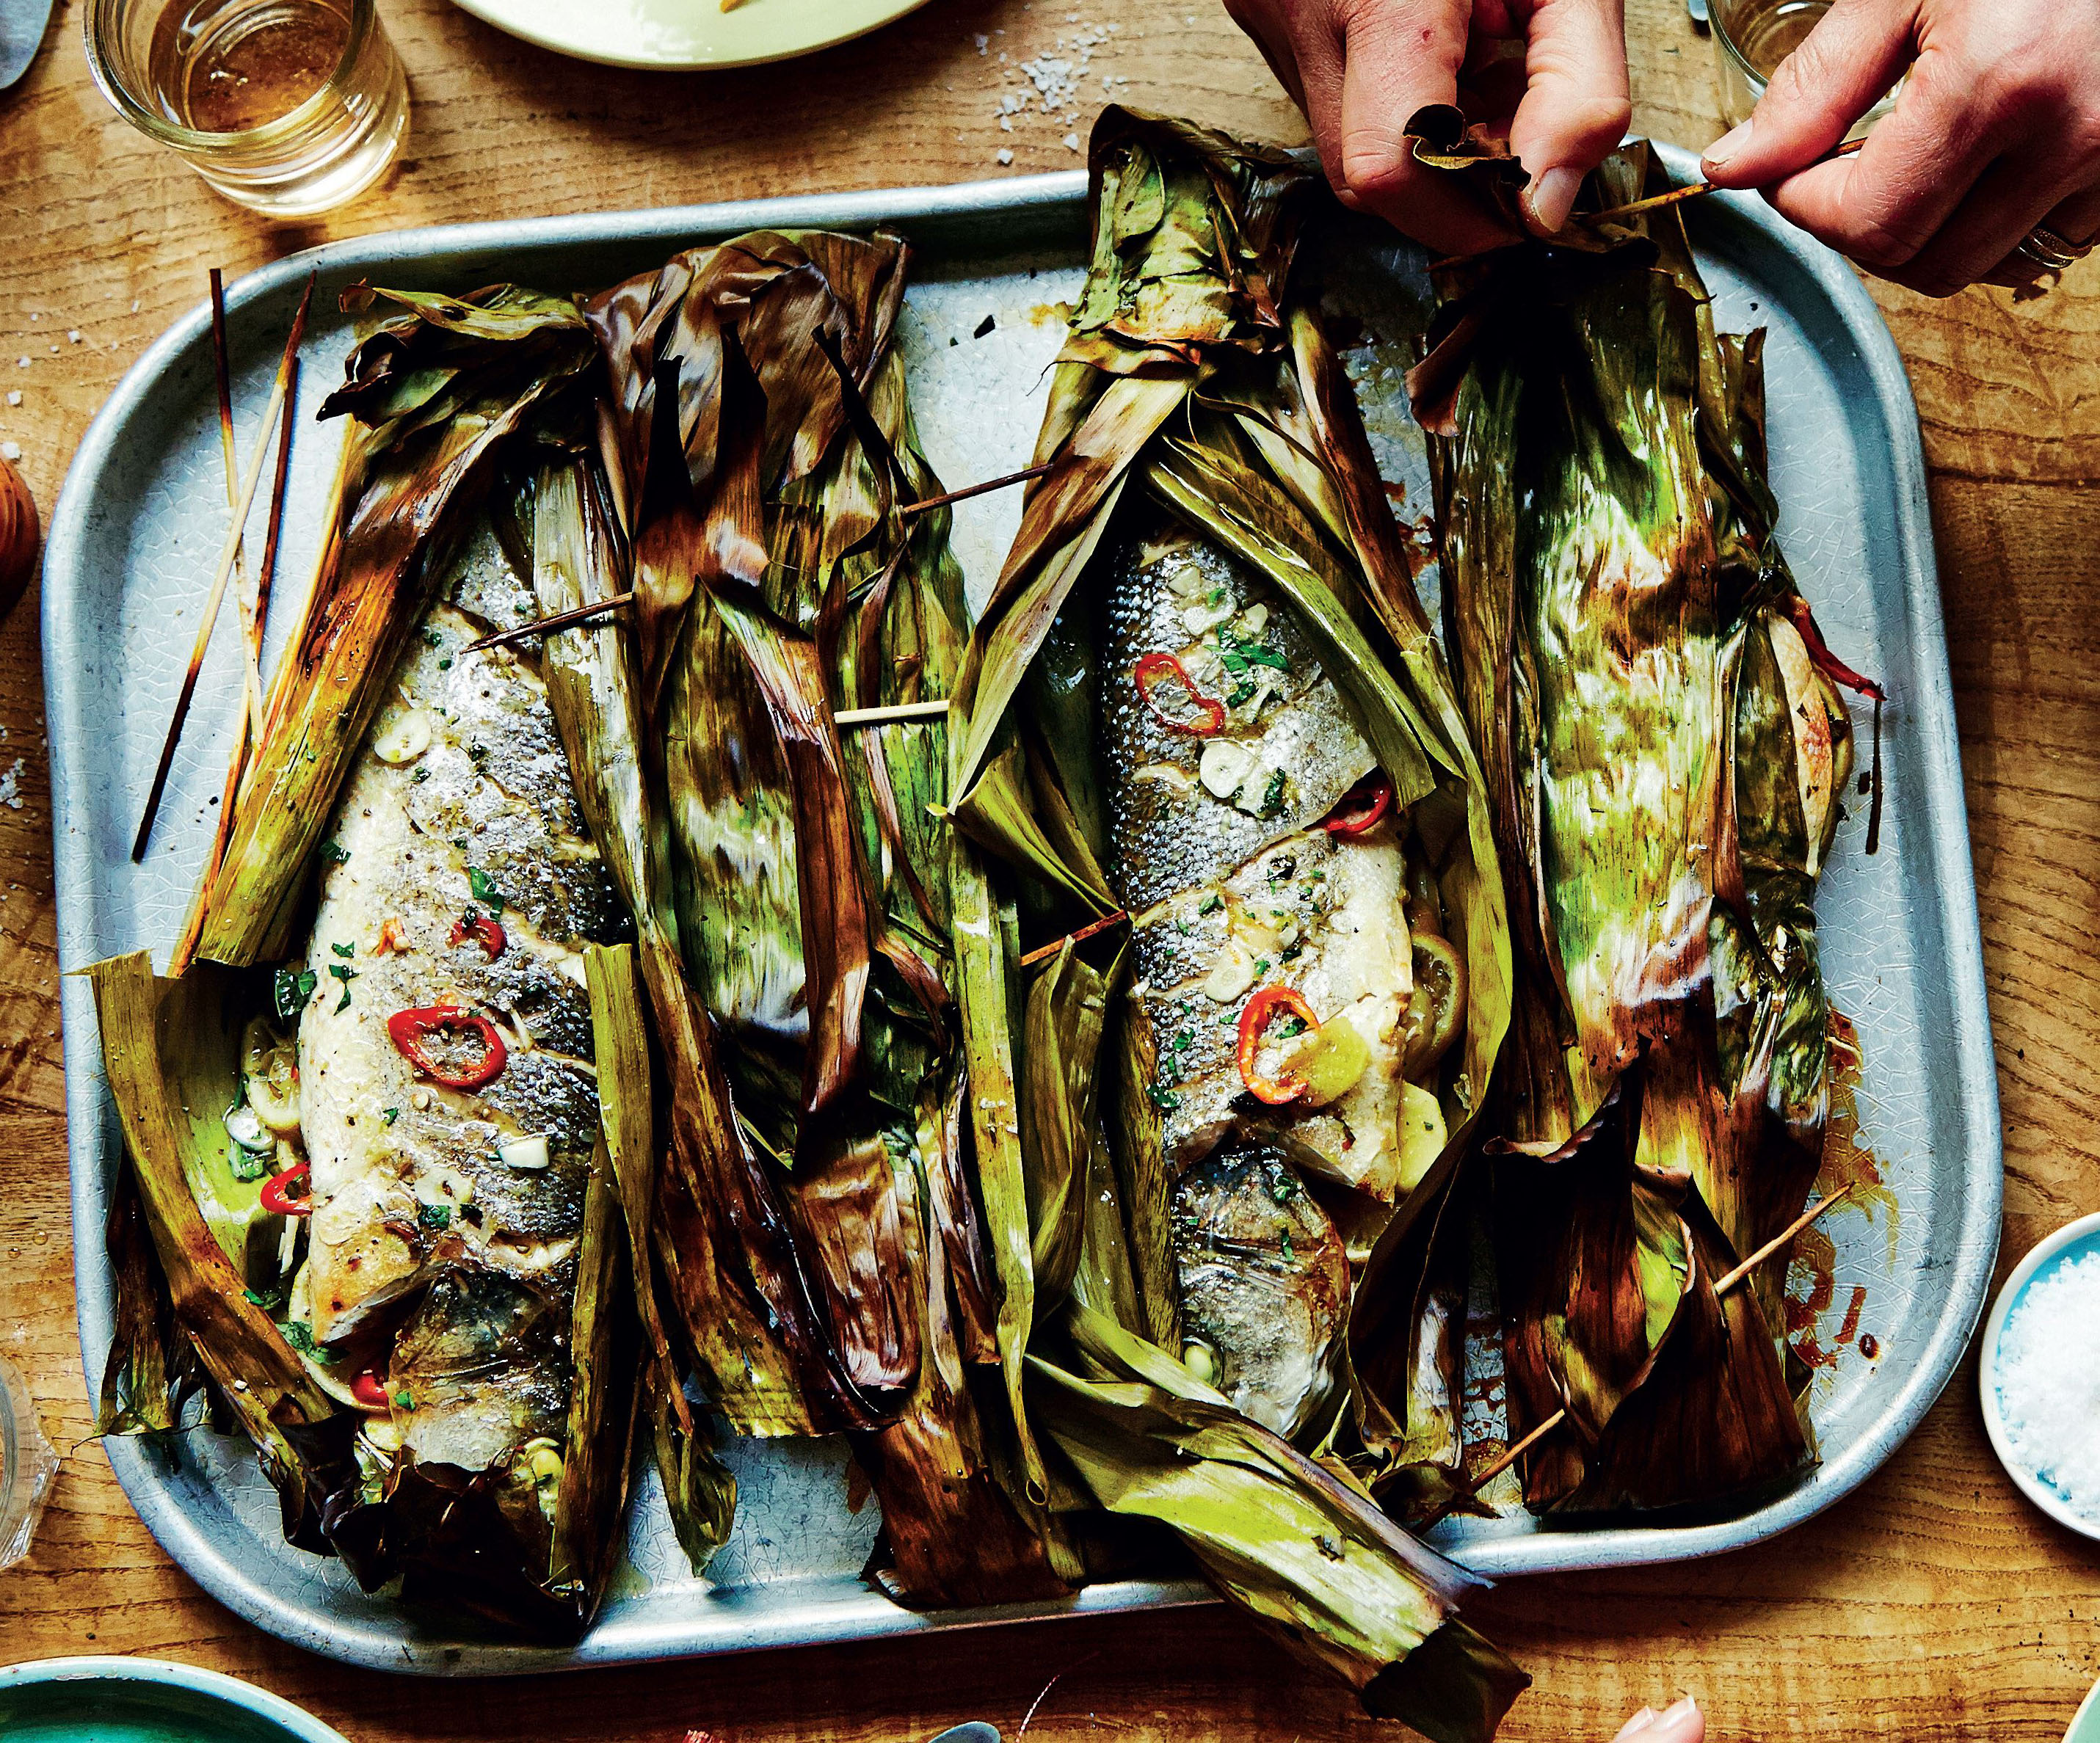 Grilled sea bass in banana leaves